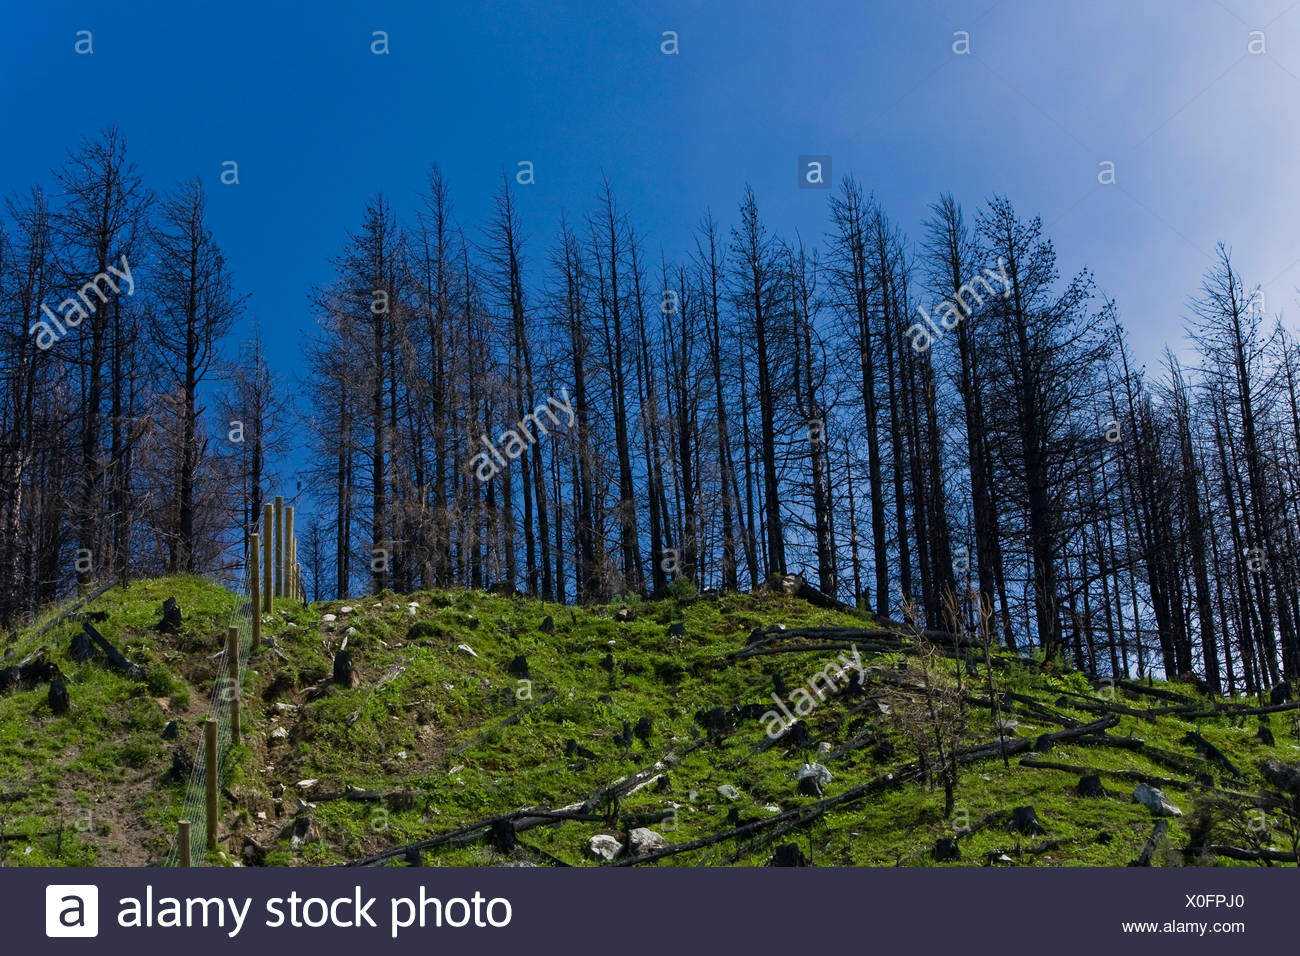 Deforestation area with scraggy trees and stumps, Lake Pukaki, South Island, New Zealand - Stock Image